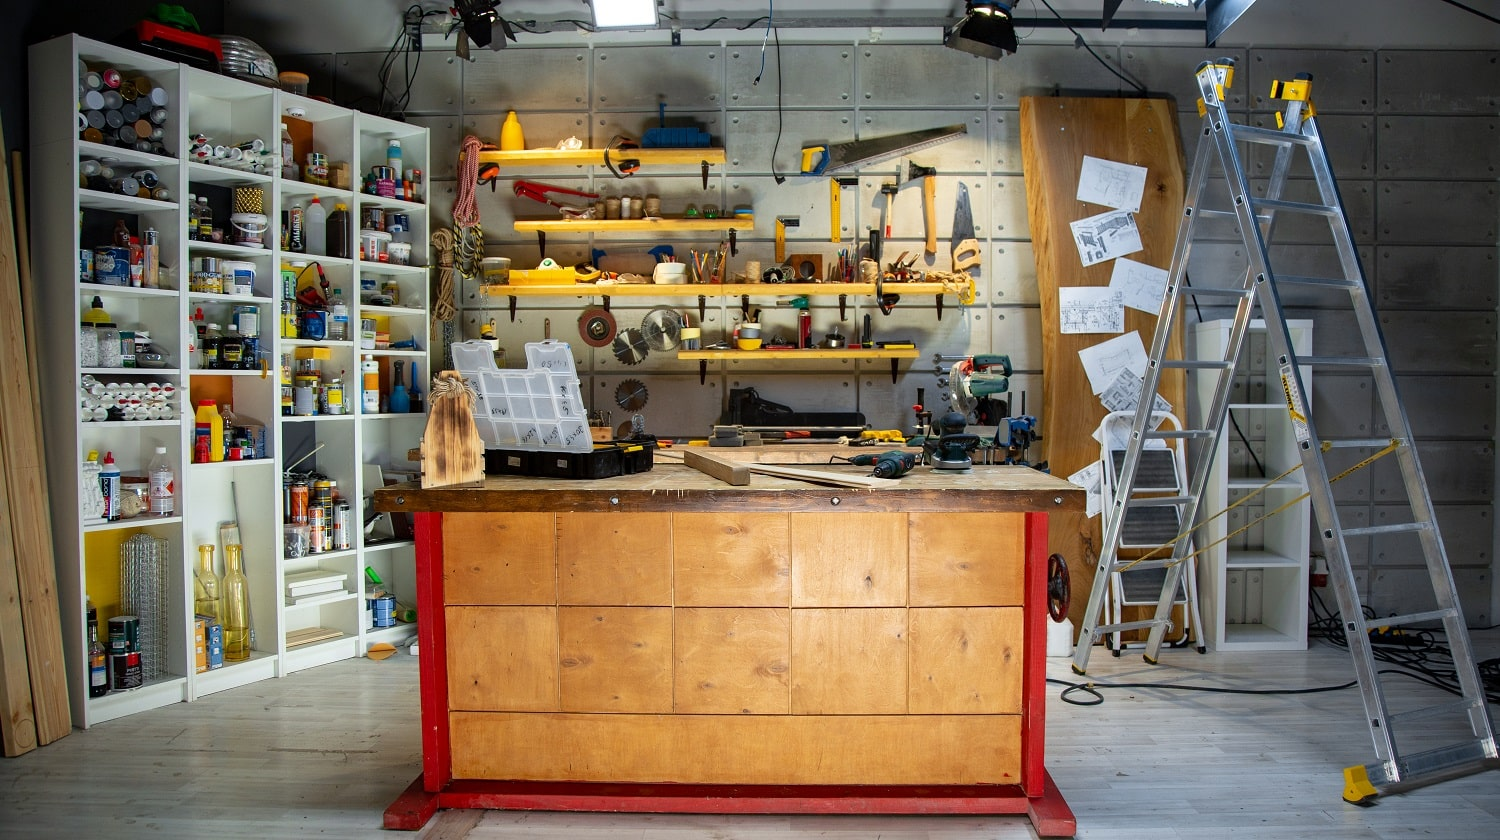 carpentry workshop equipped with the necessary tools.